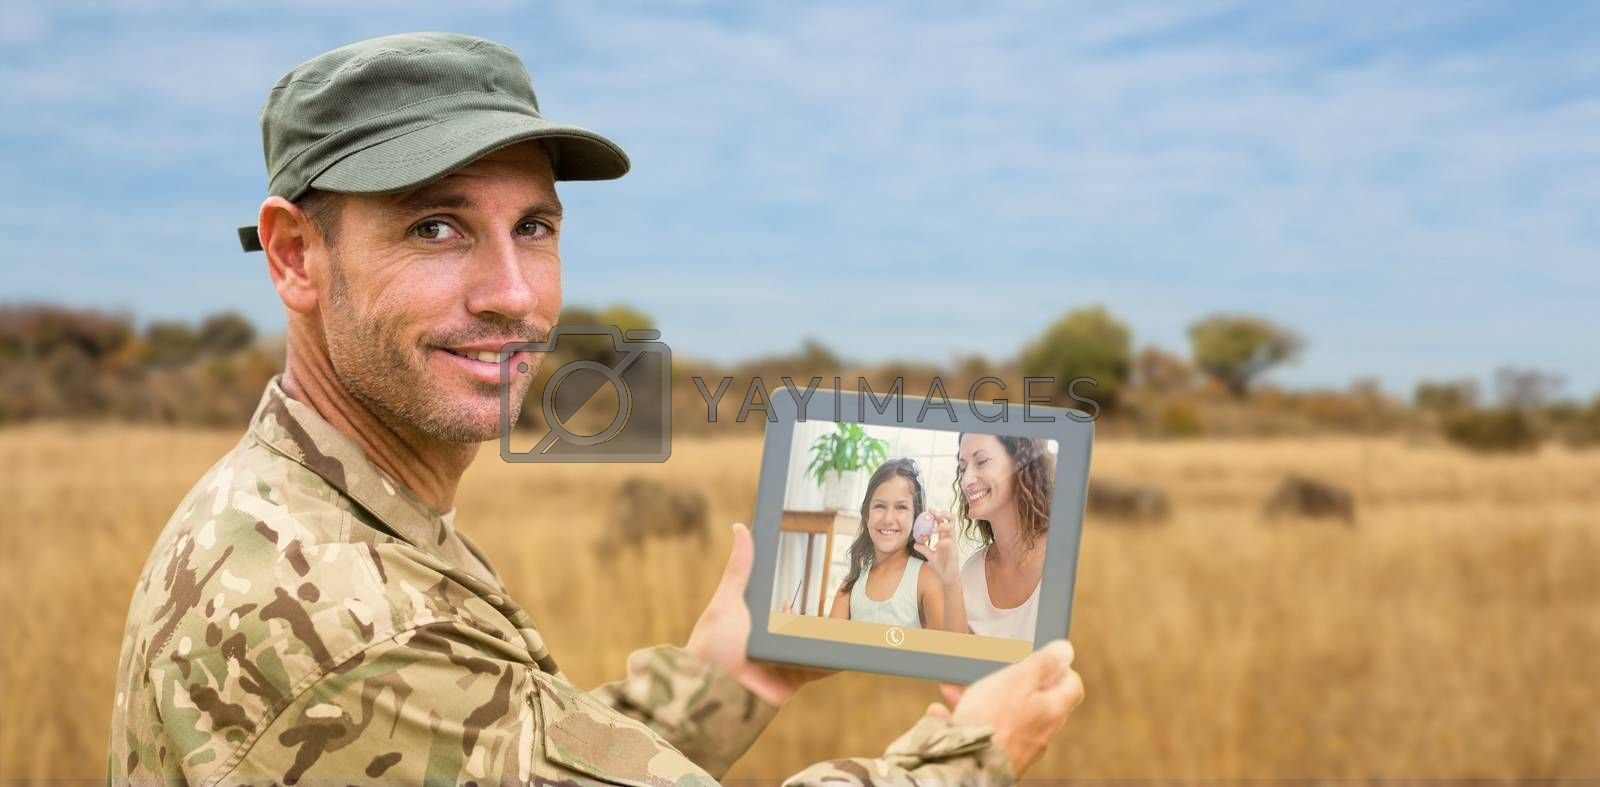 Composite image of soldier using tablet pc by Wavebreakmedia